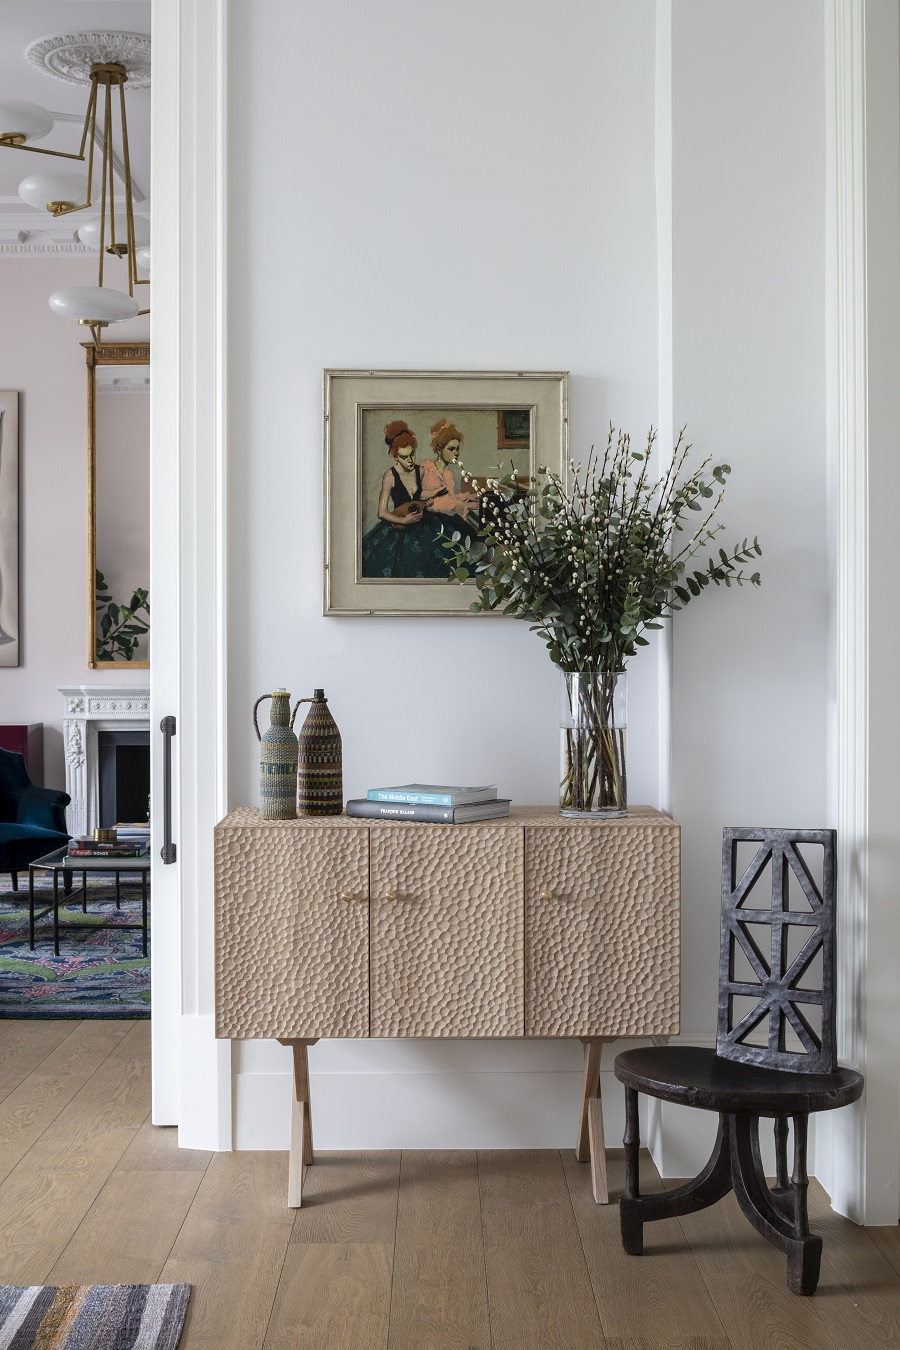 Comfort and Calm and Stunning Art in An Elegant Pied-à-Terre